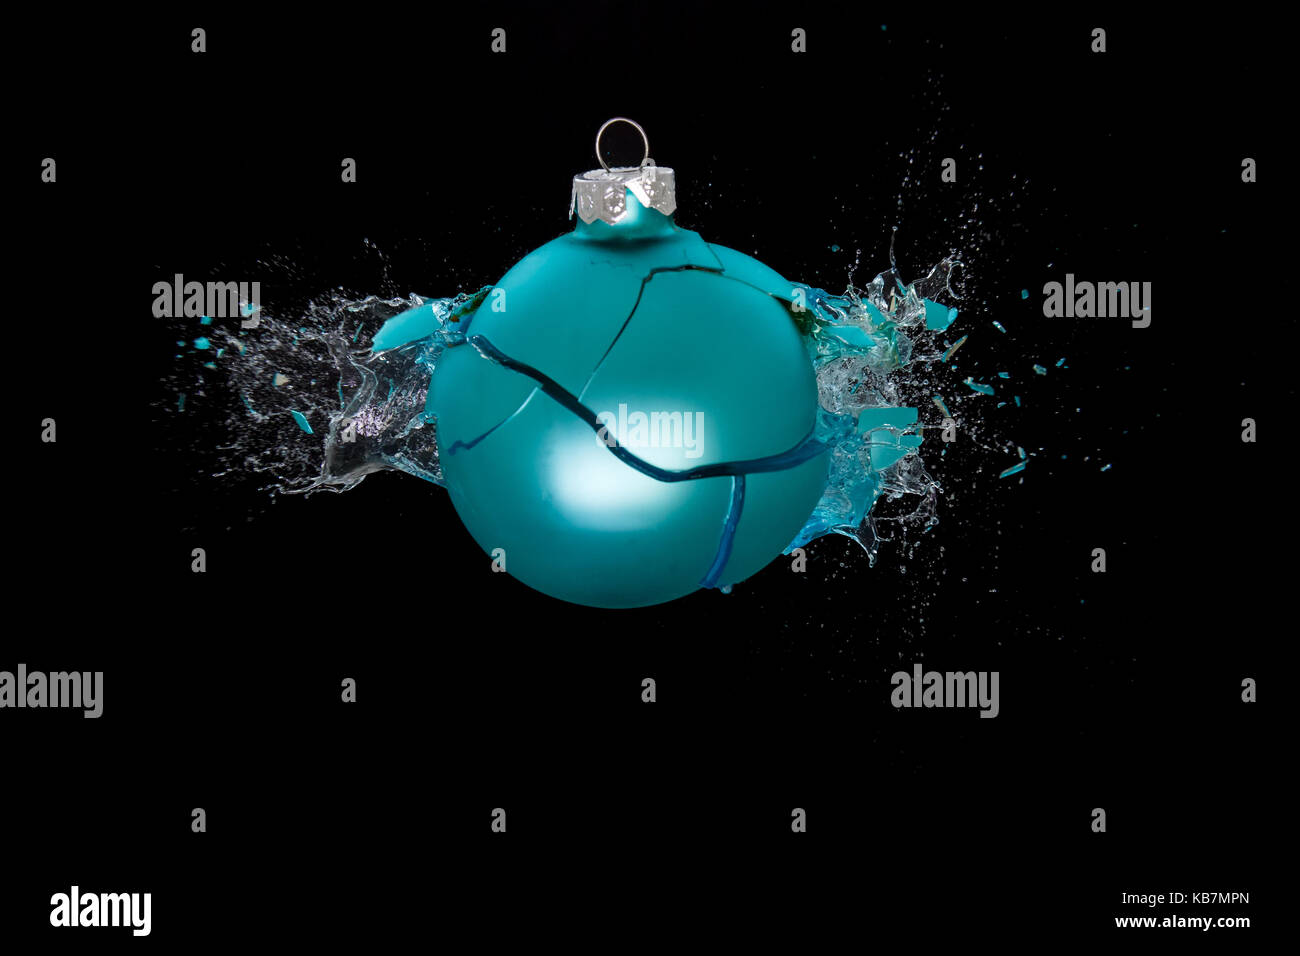 Broken Glass Ball Stock Photos & Broken Glass Ball Stock ...